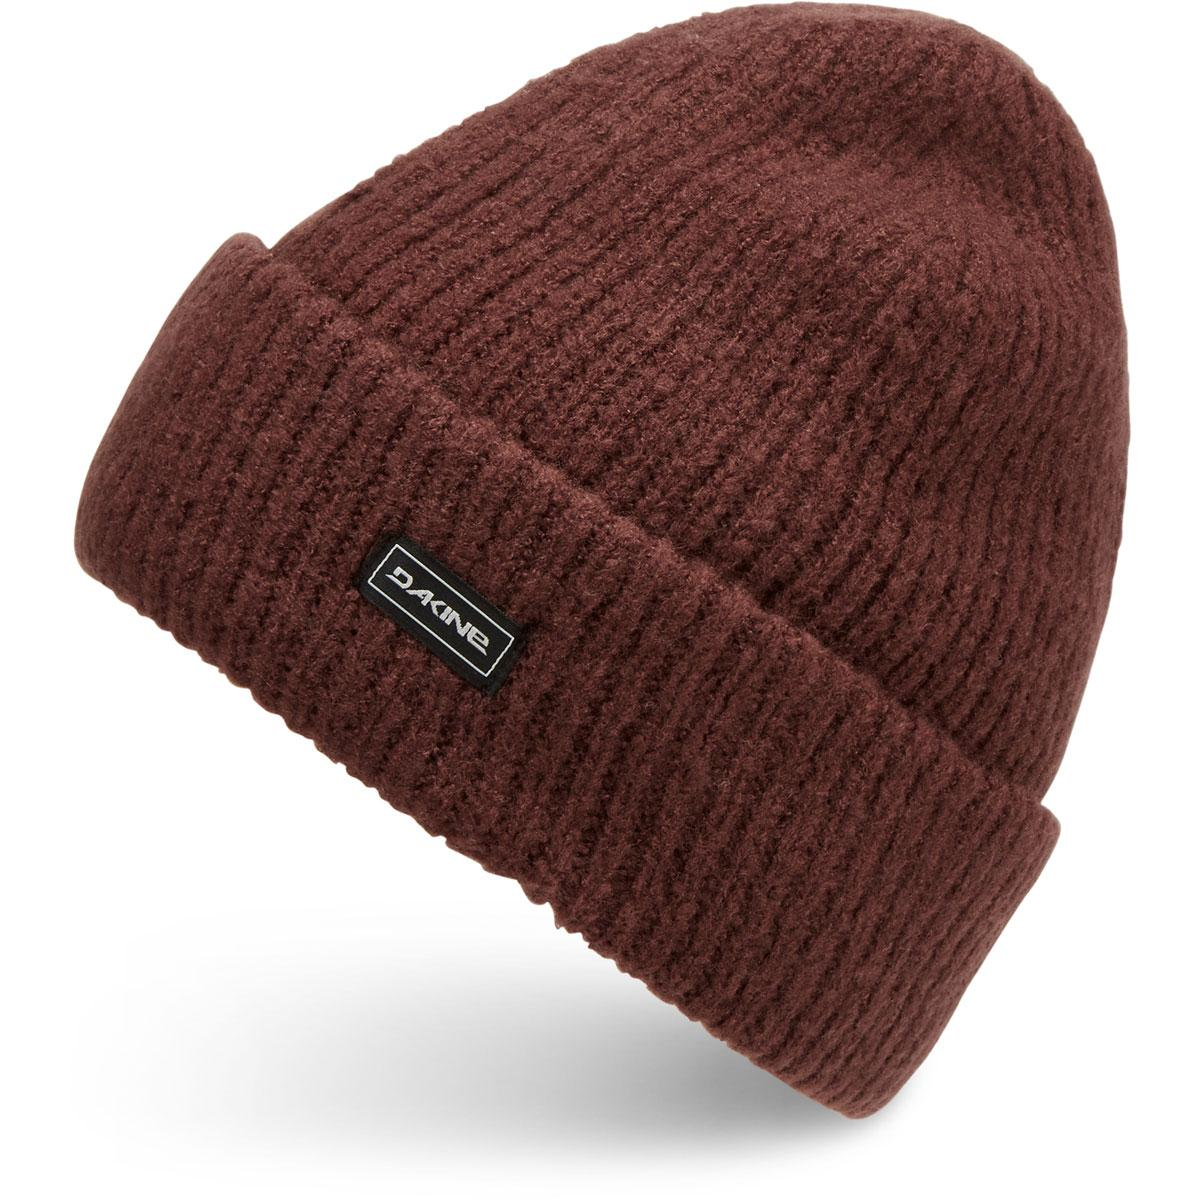 Dakine Harper beanie in Rust Brown